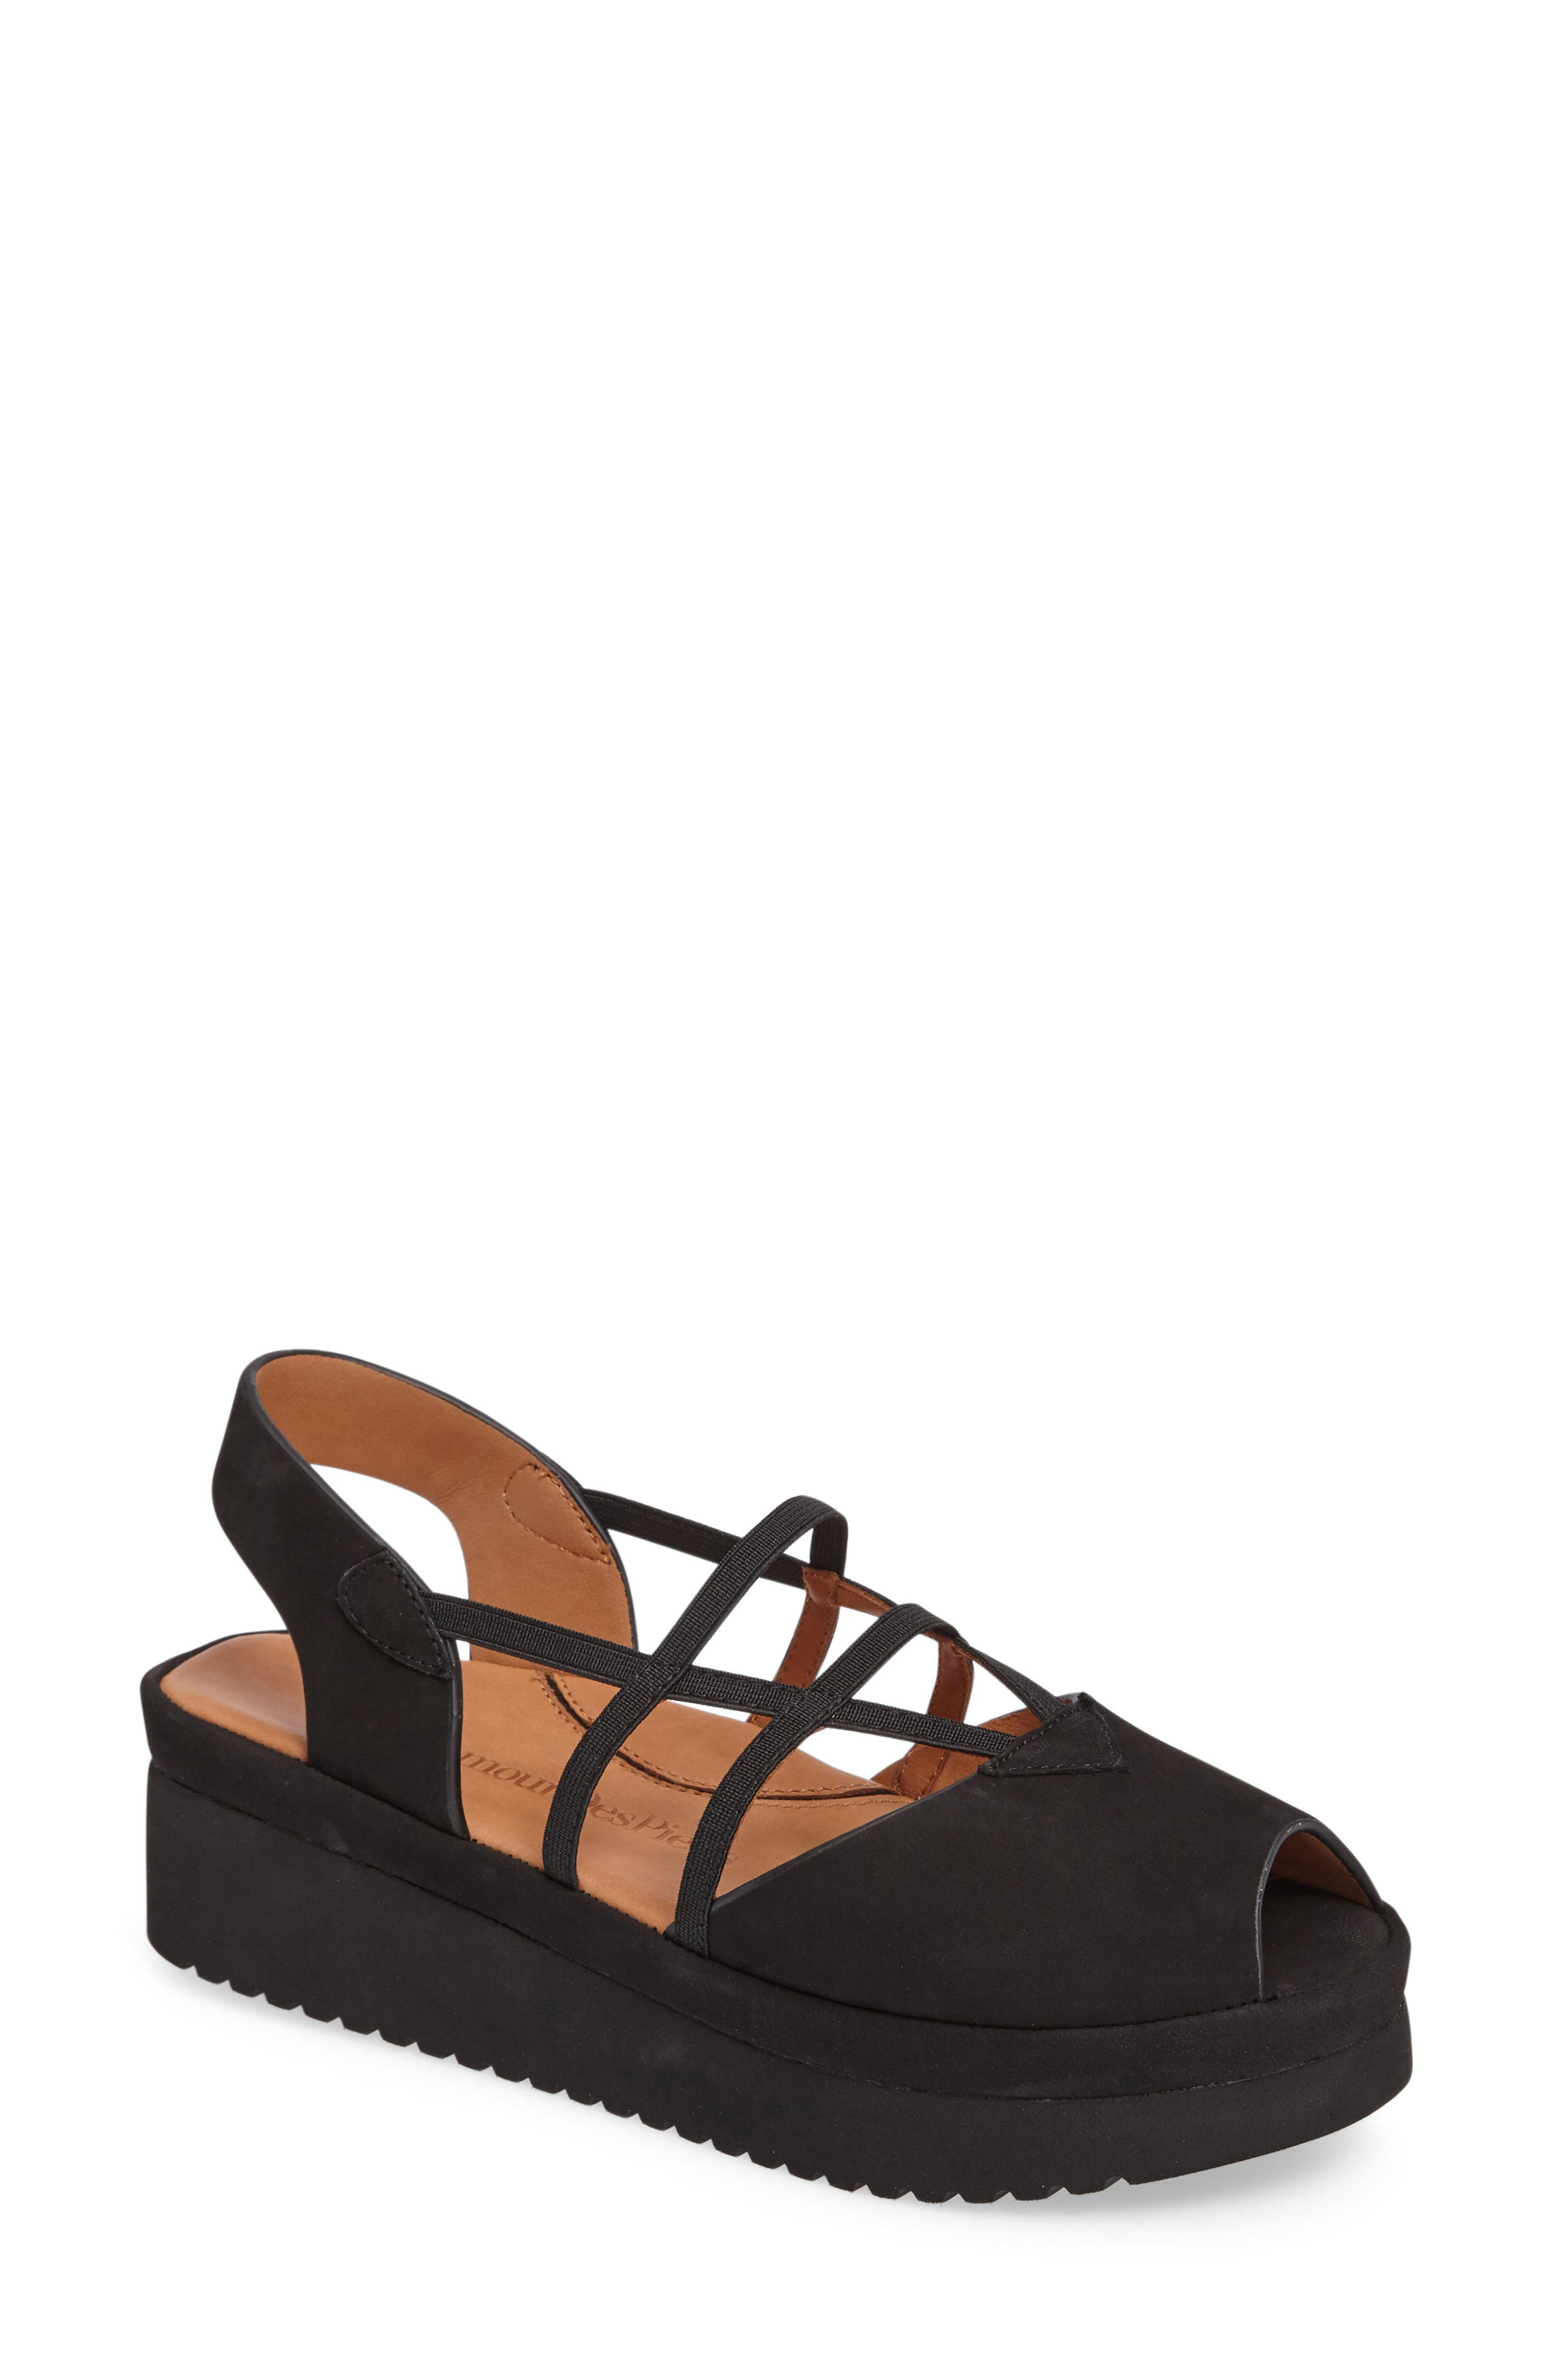 L'AMOUR DES PIEDS Adelais Platform Wedge Sandal, Main, color, BLACK NUBUCK LEATHER